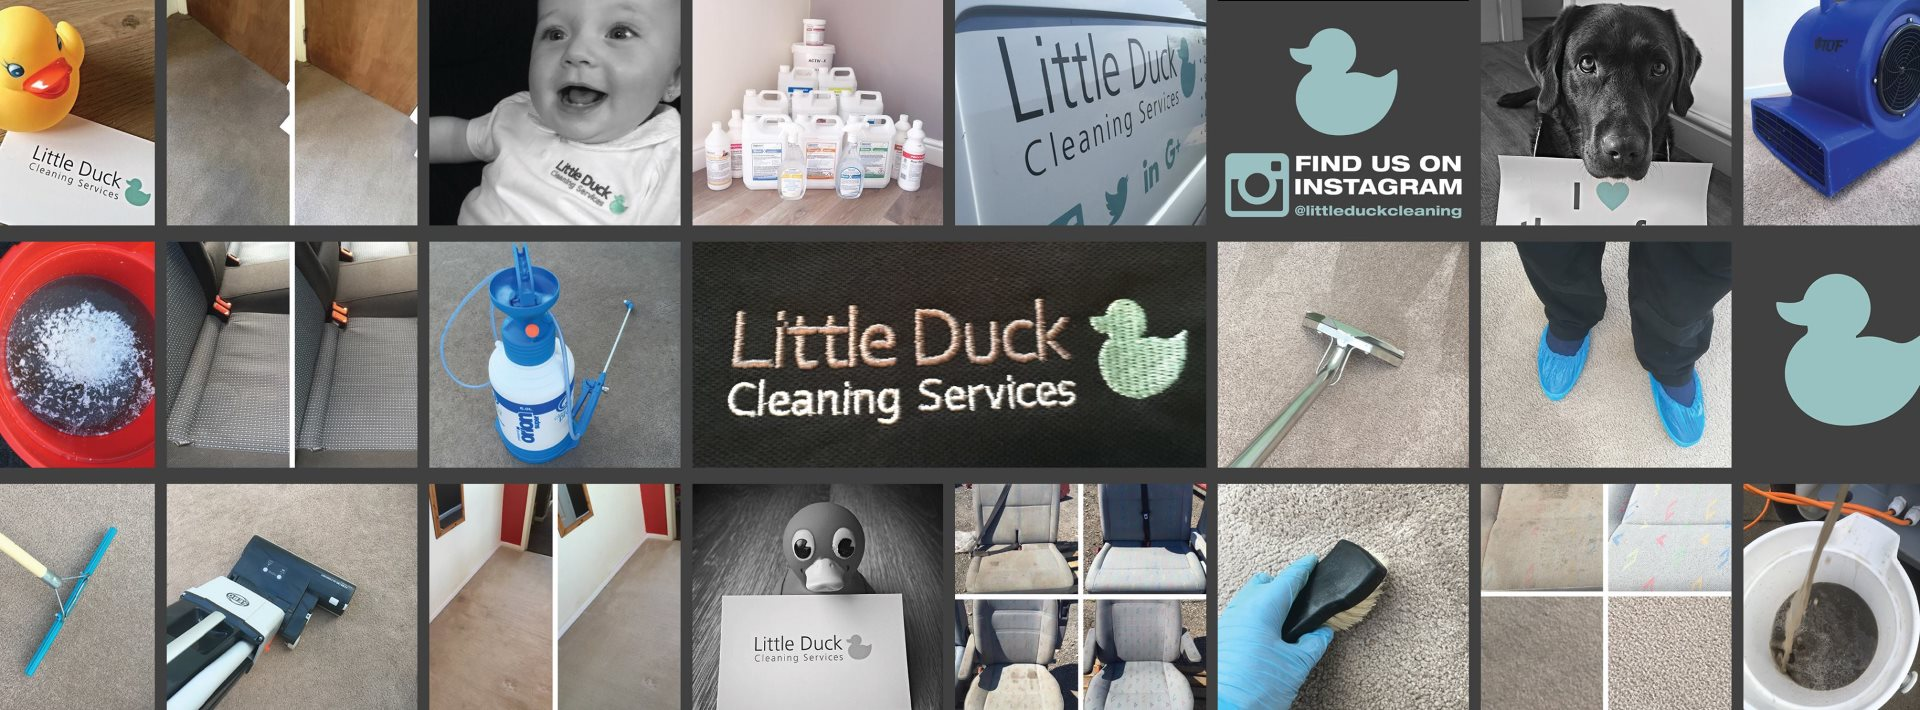 Little Duck Cleaning Services Limited provide a wide range of domestic and commercial cleaning services and contracts to homes and commercial premises across Cumbria and the Borders